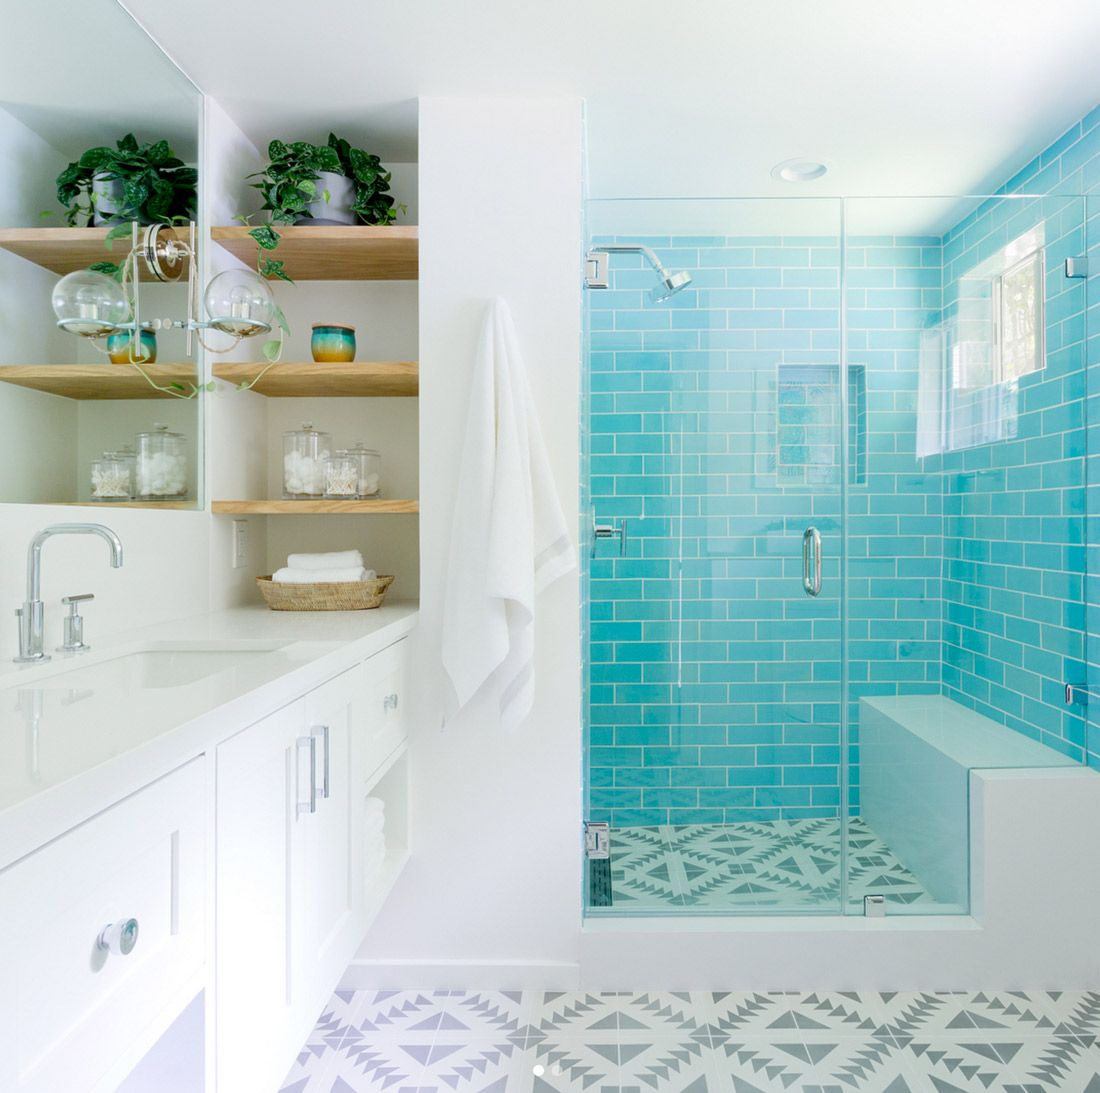 5 examples of color personality with handmade tile 3x8 12w blue 5 examples of color personality with handmade tile 3x8 12w blue bell dailygadgetfo Images